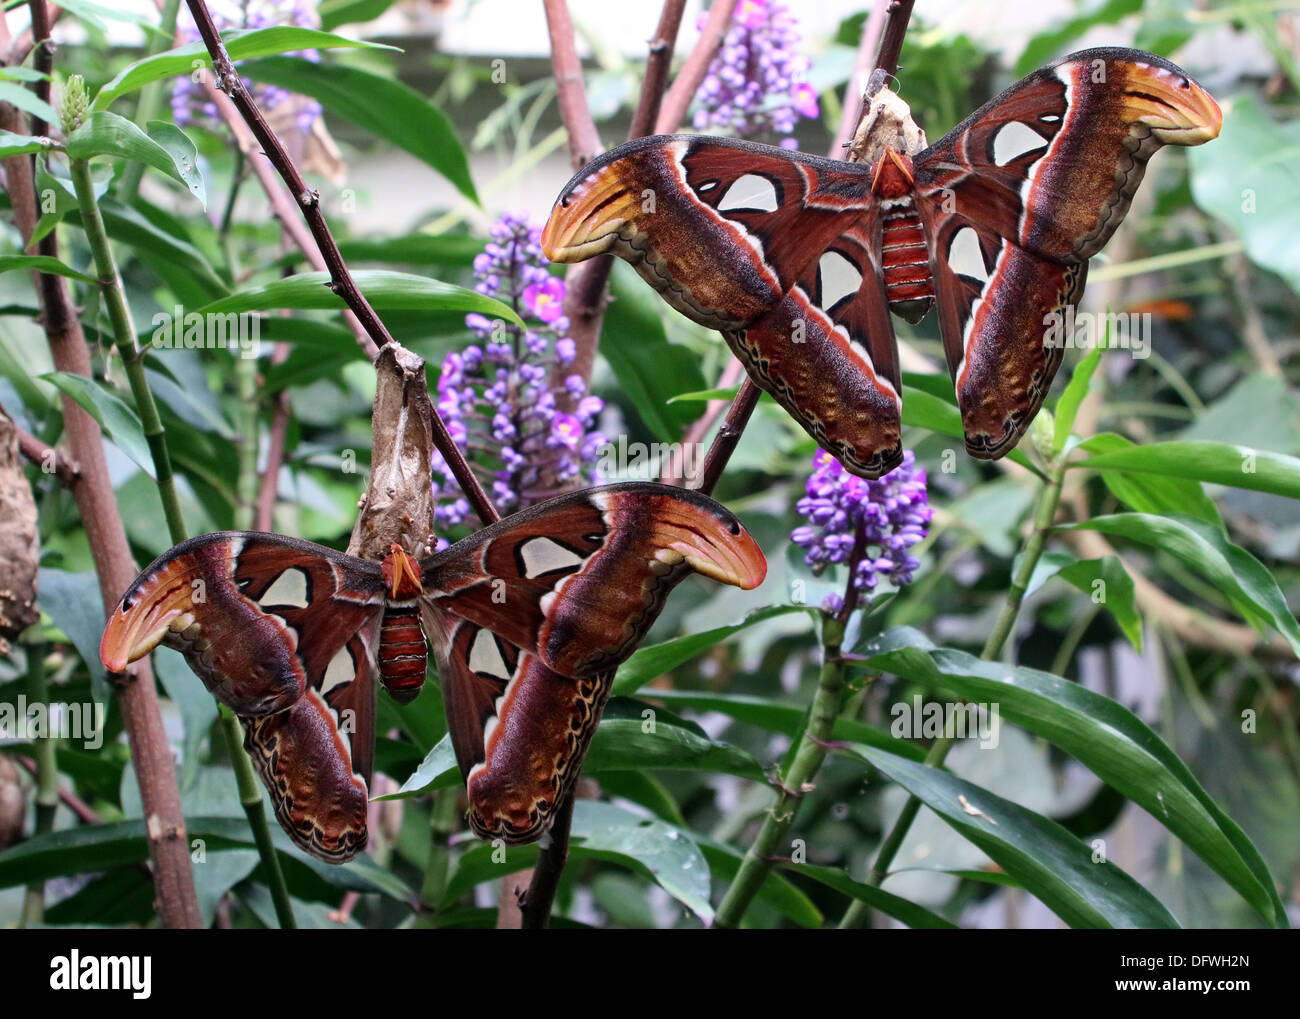 Two giant Atlas moths (Attacus atlas) posing together - Stock Image